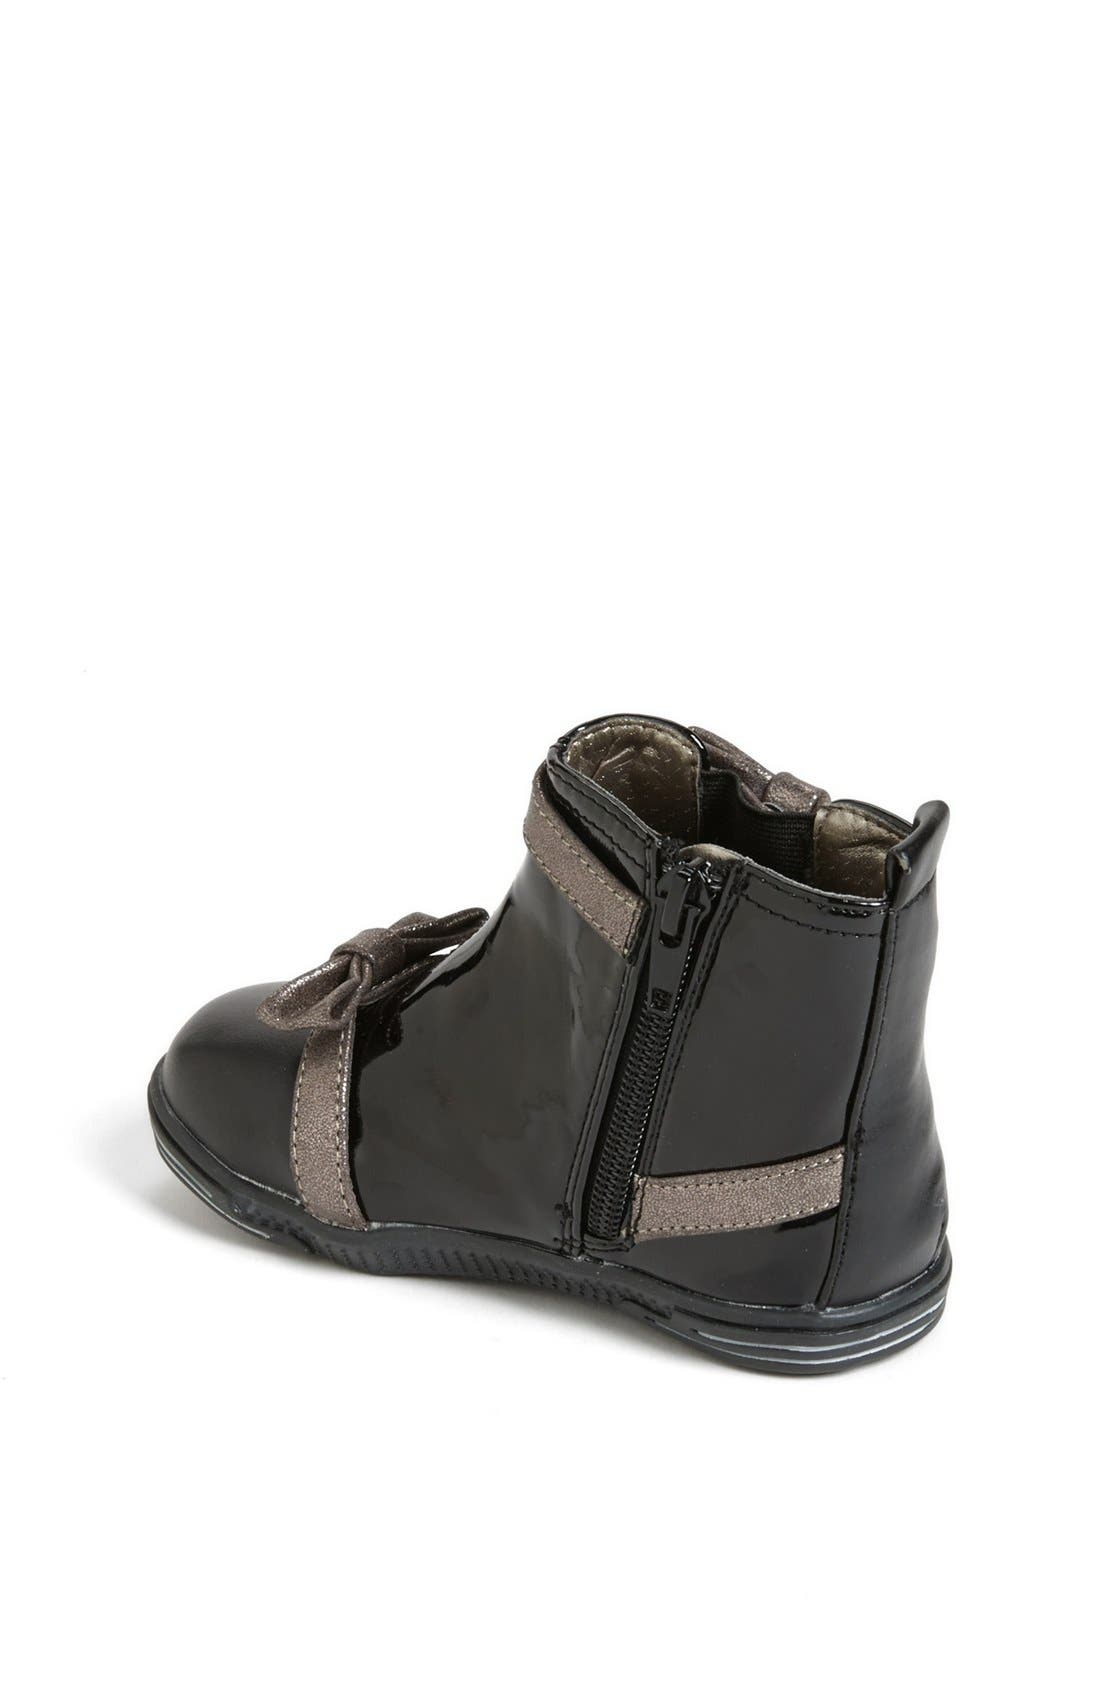 Alternate Image 2  - kensie girl Bow Boot (Walker & Toddler)